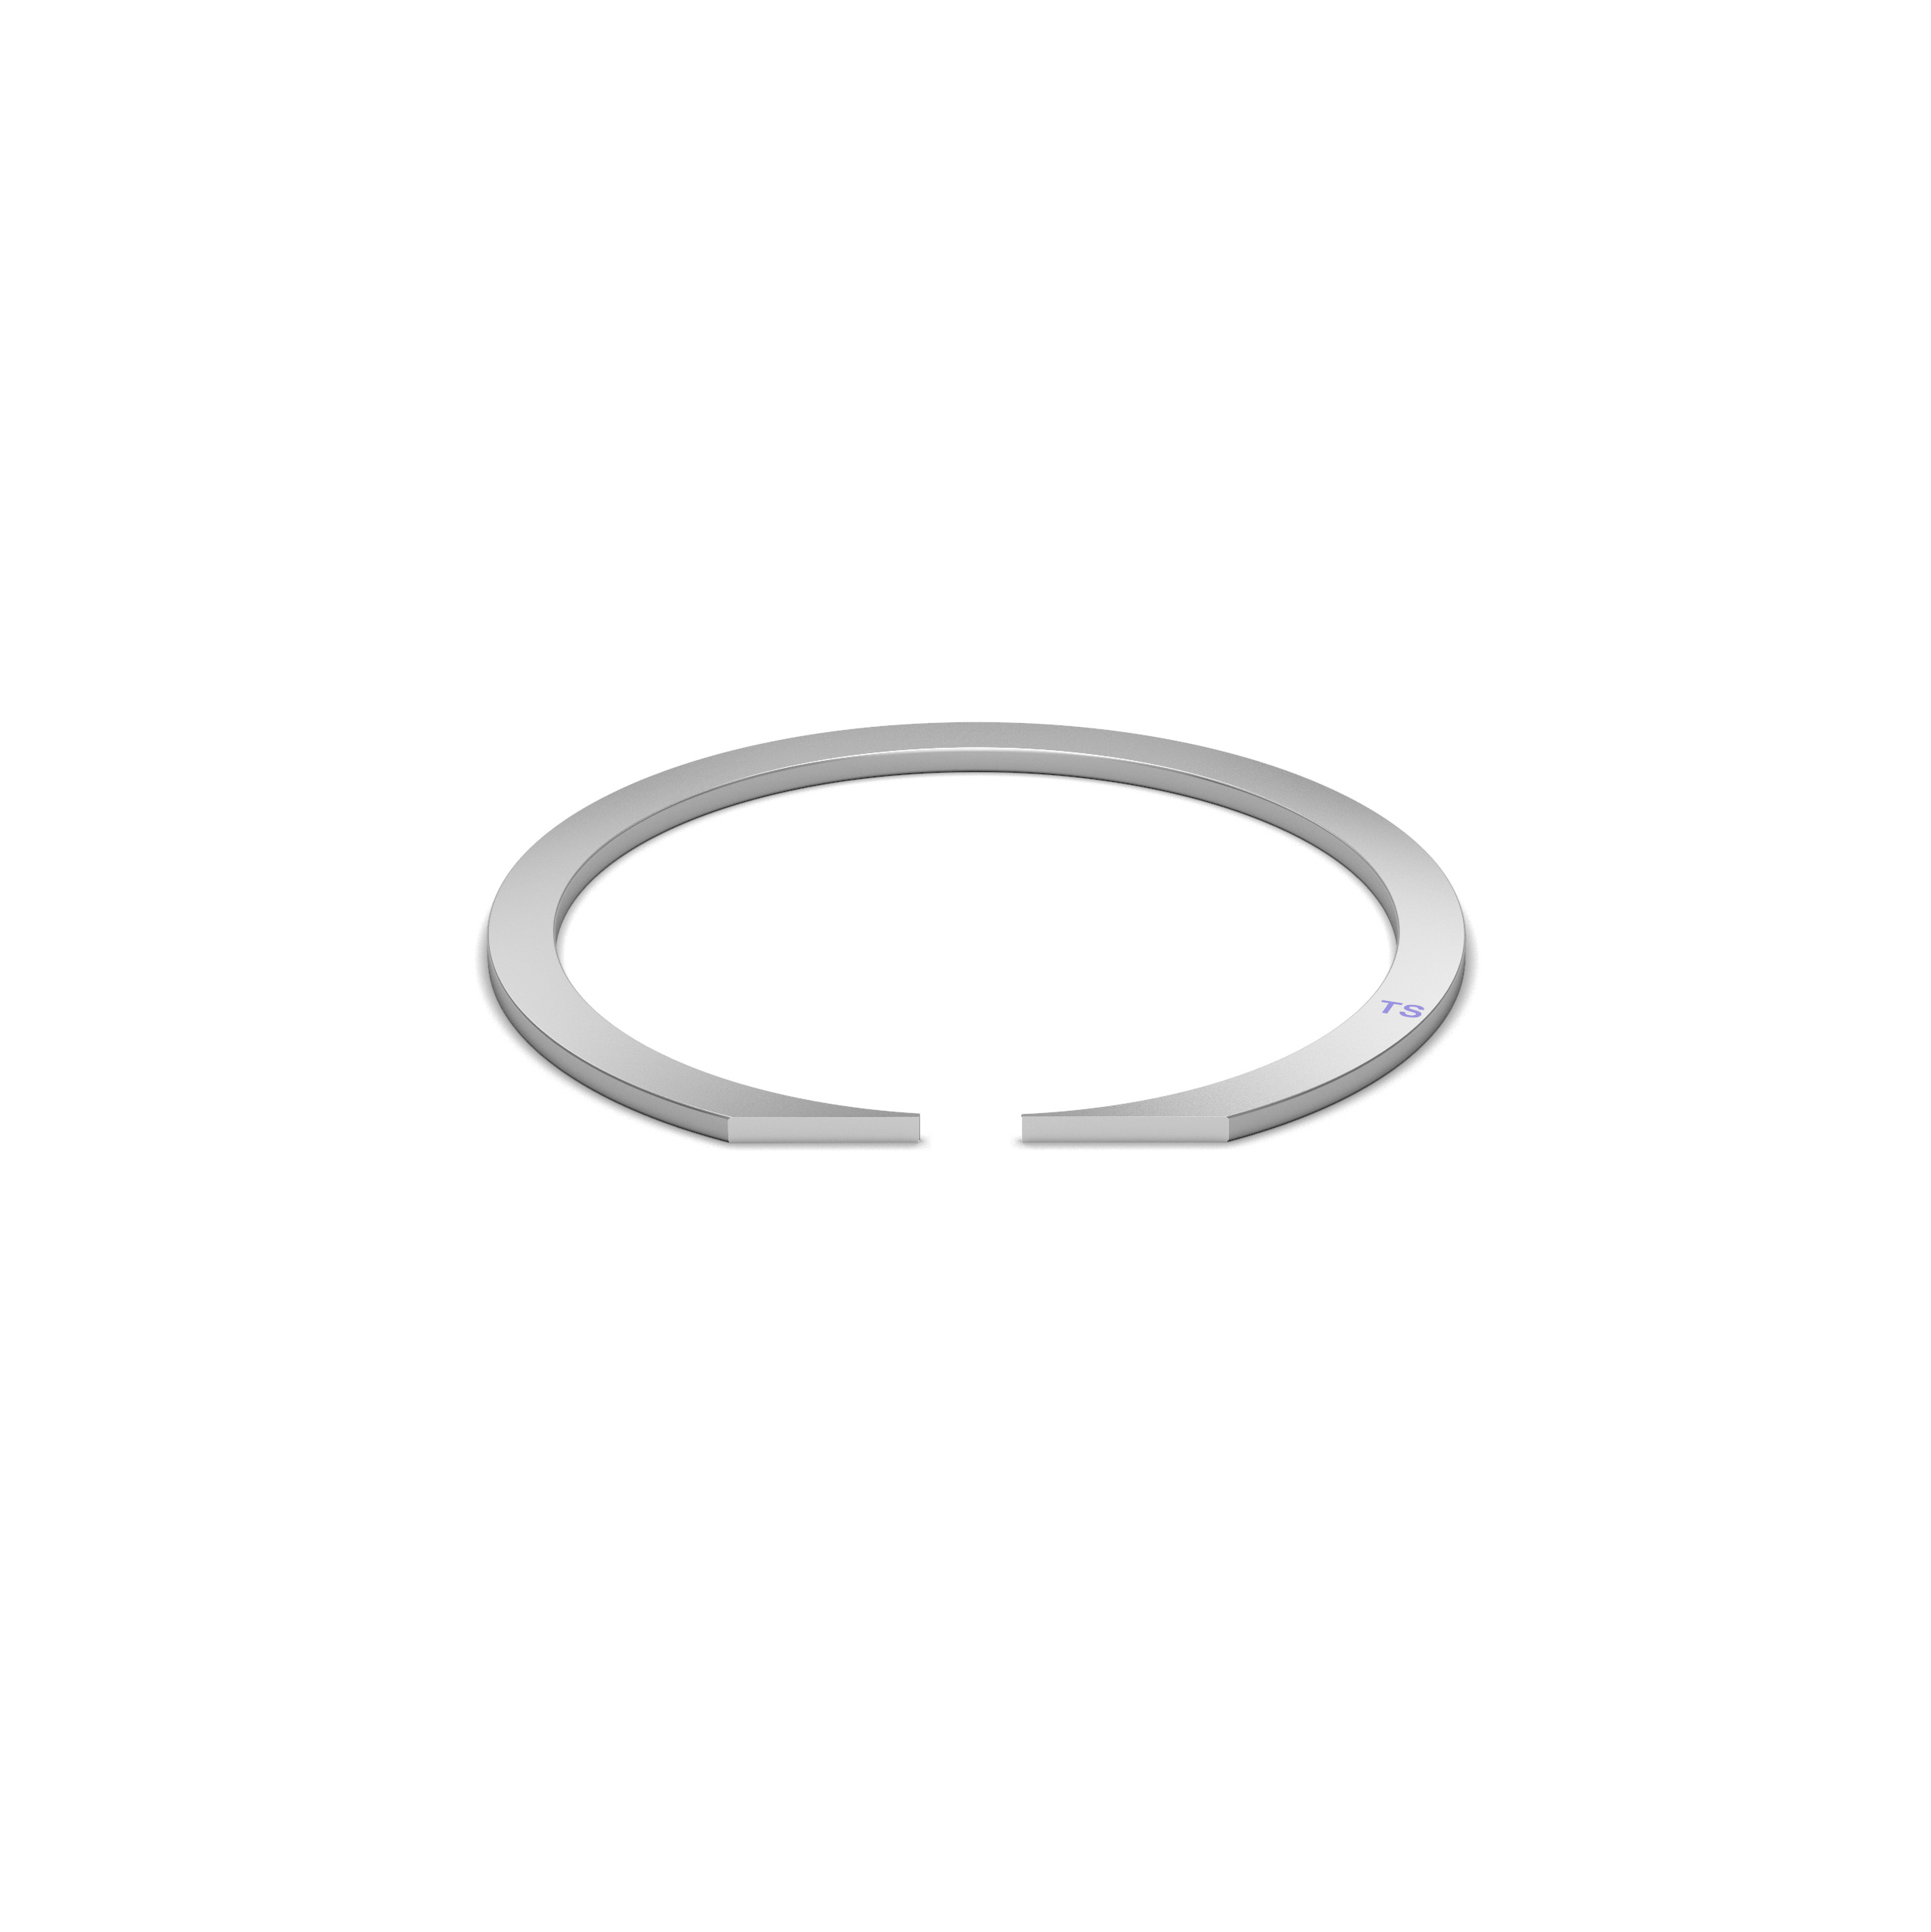 RETAINING RINGS/Custom Retaining Rings and Section Selections